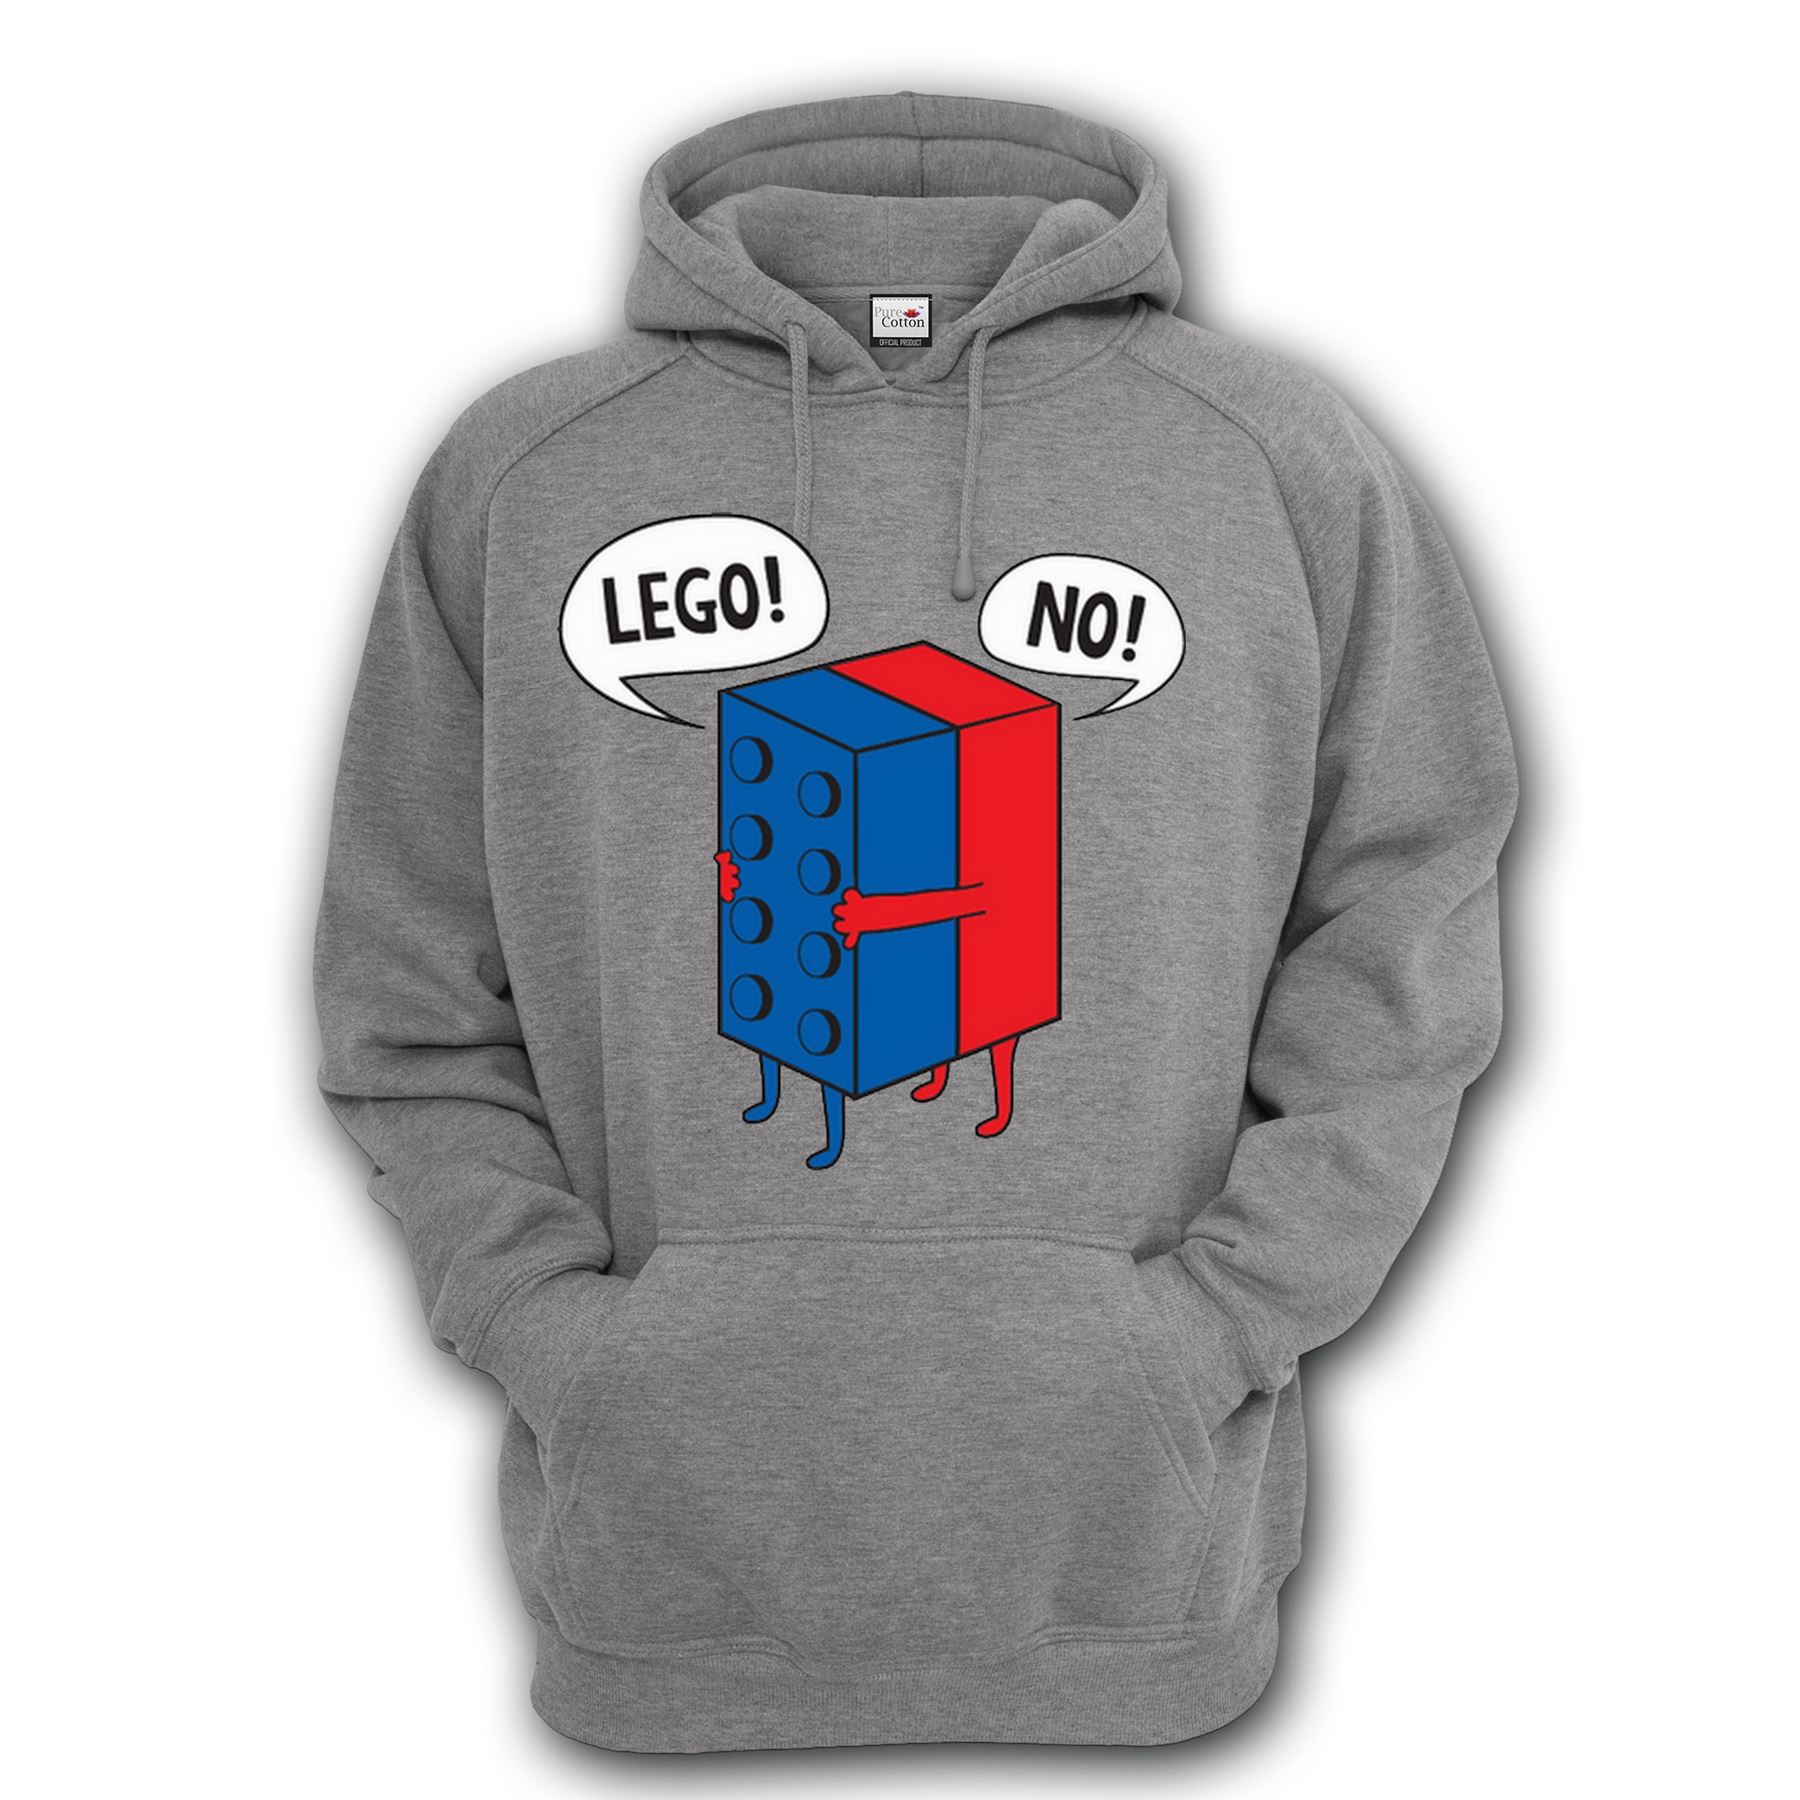 Lego Inspired Lego No Funny Design Lego Inspired Hoodies S 5xl All